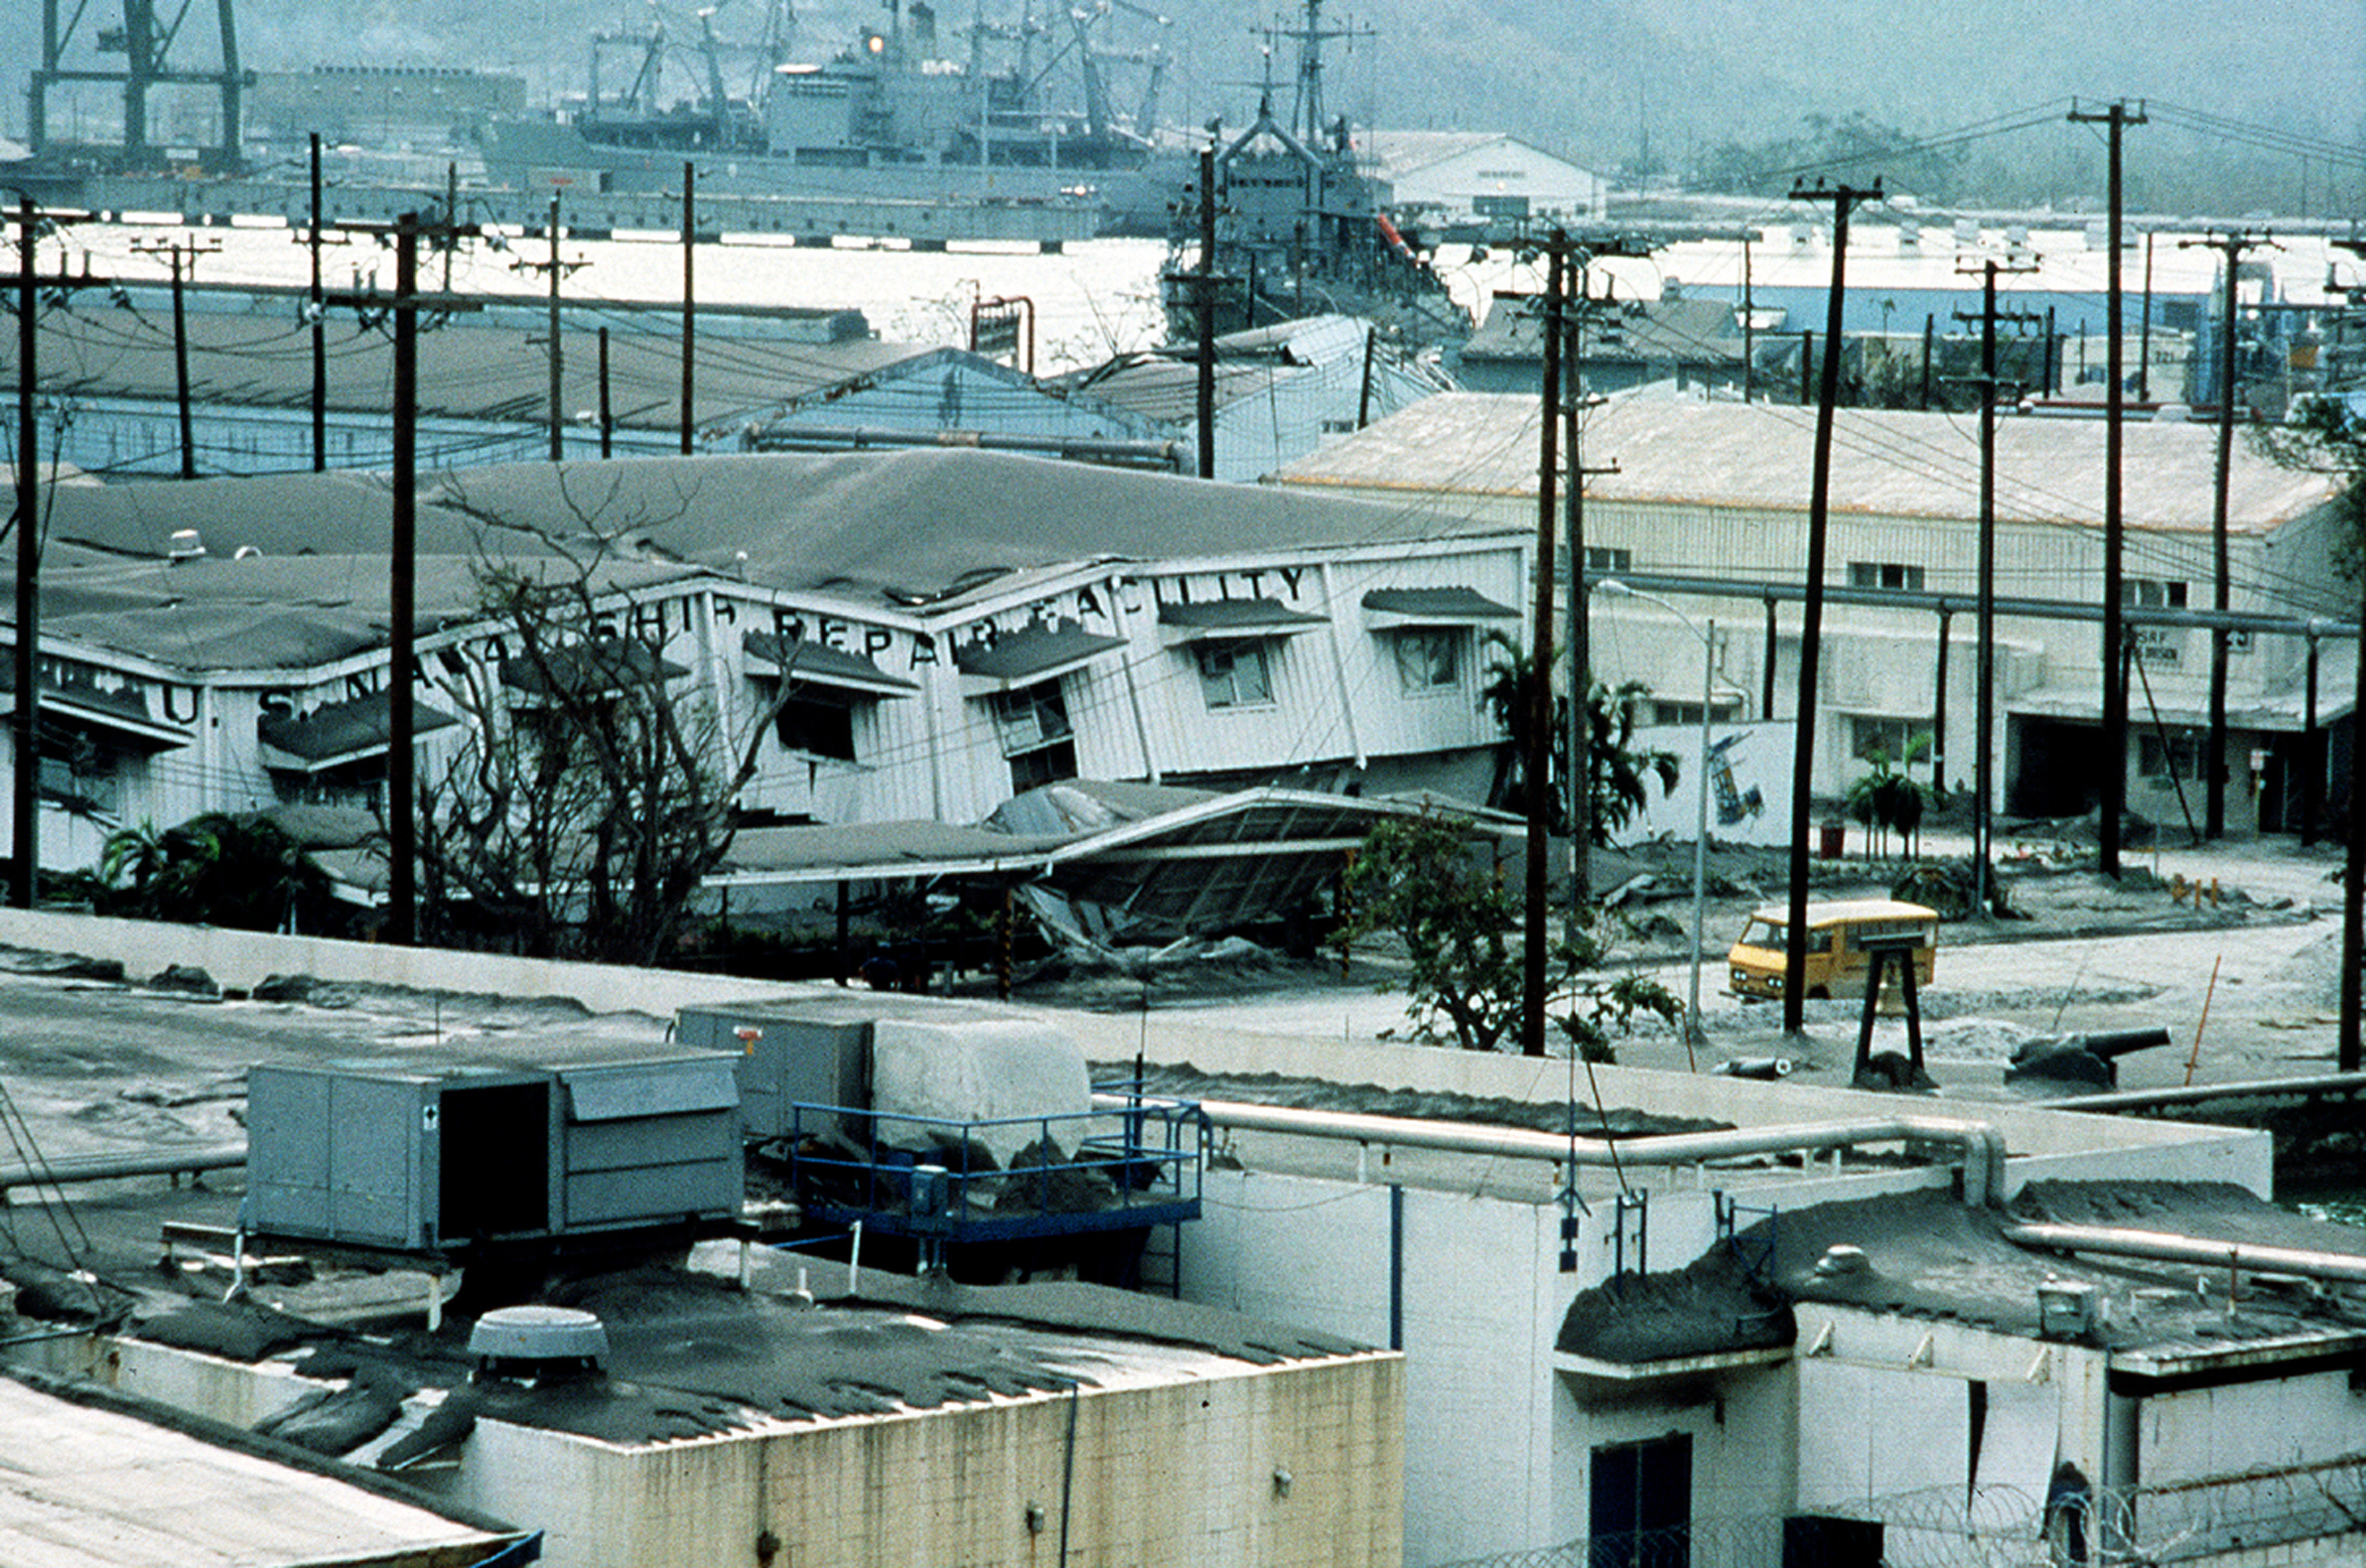 Description SRF Subic Bay and USS Brunswick June 1991.jpg